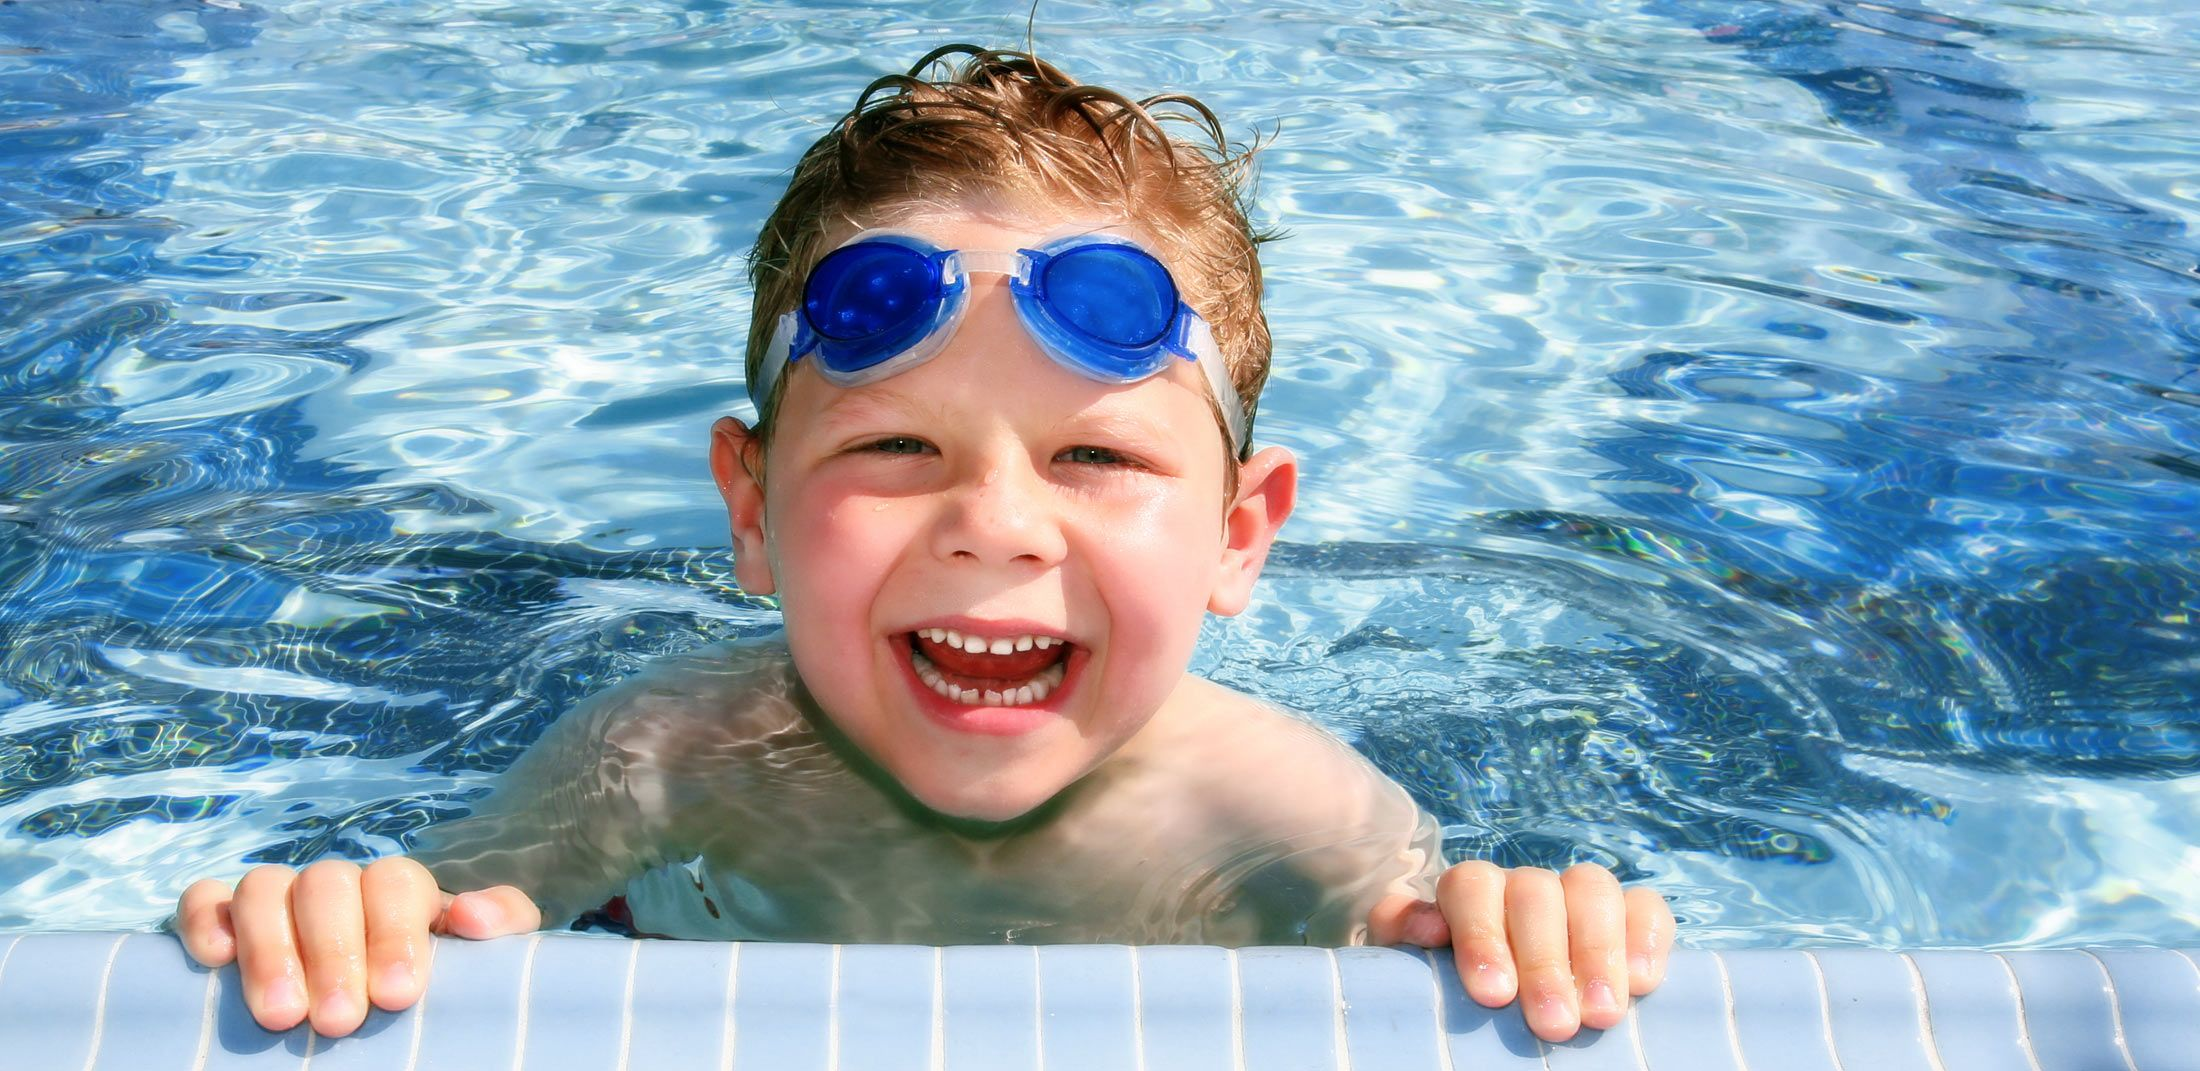 Read More About Aquatic Therapy And Autism At Our Blog